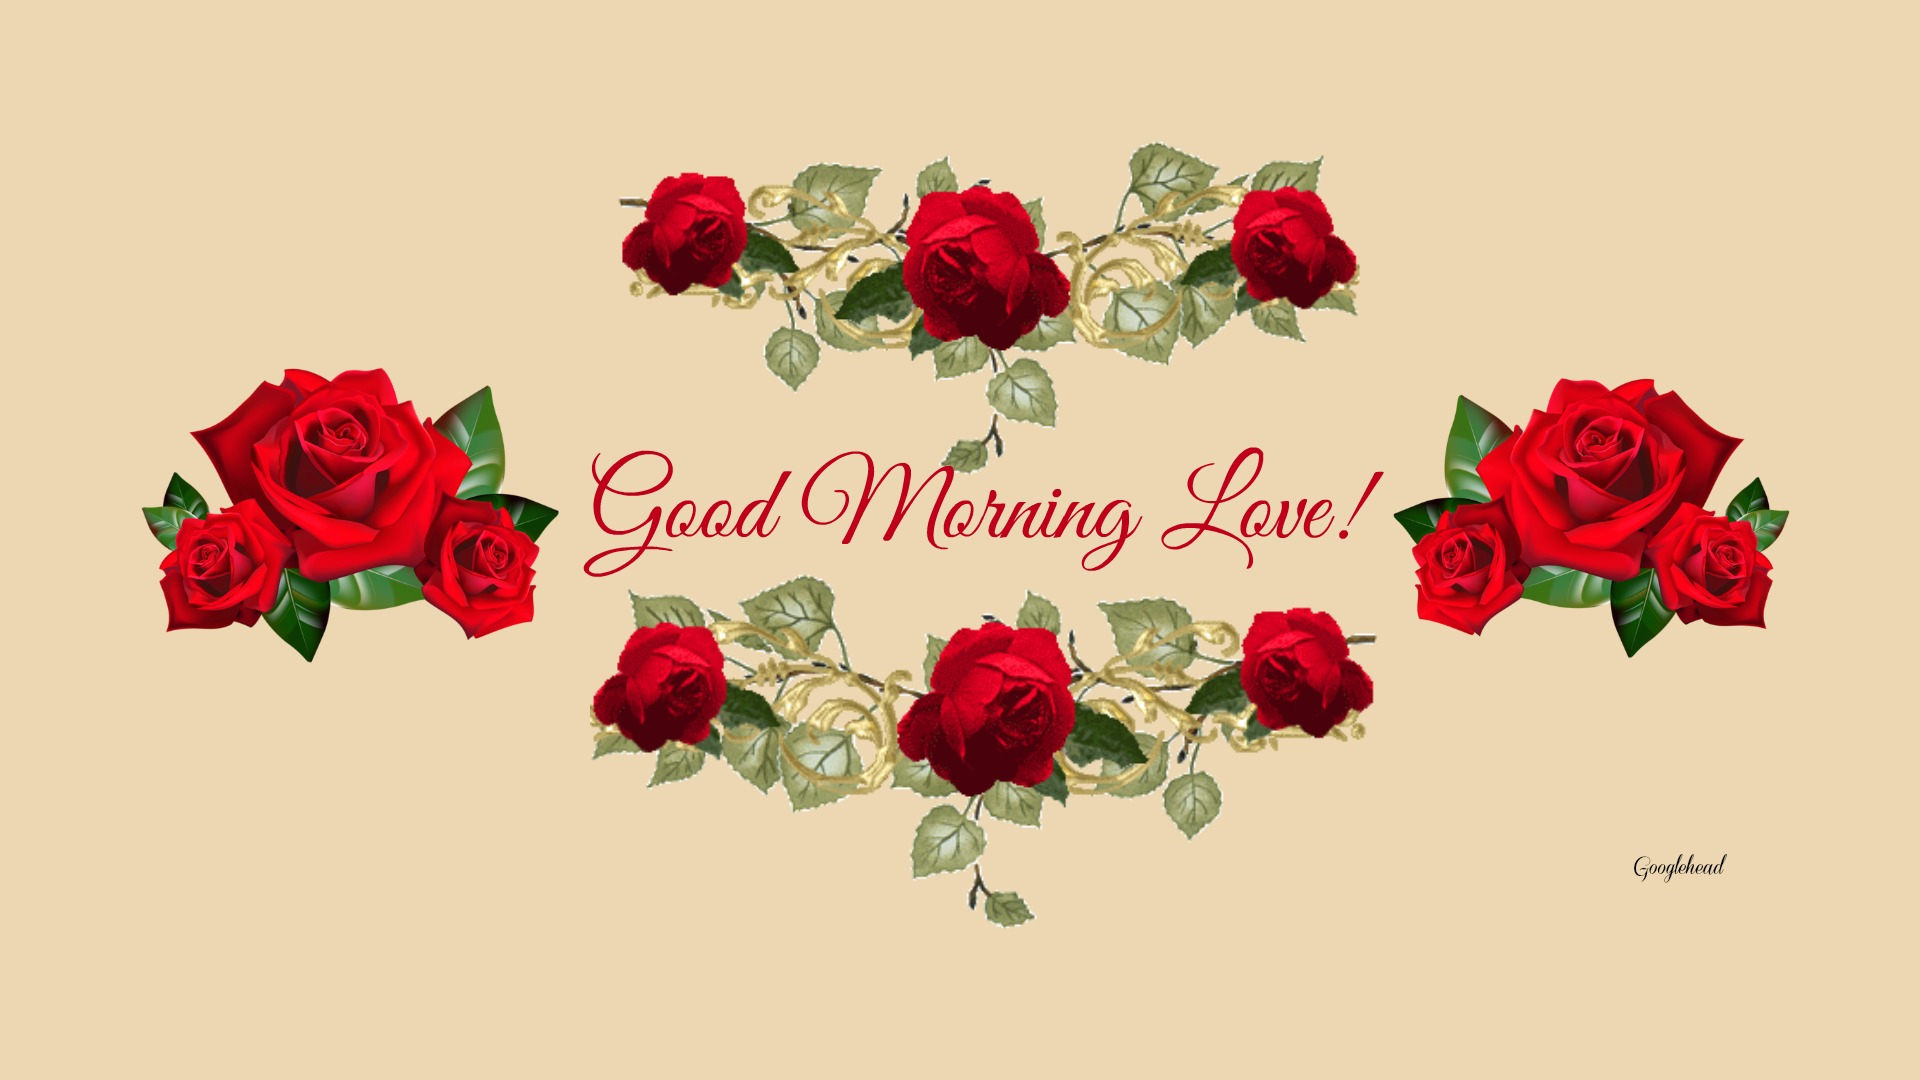 Love Good Morning Wish Wallpaper : Good Morning wallpapers, Pictures, Images